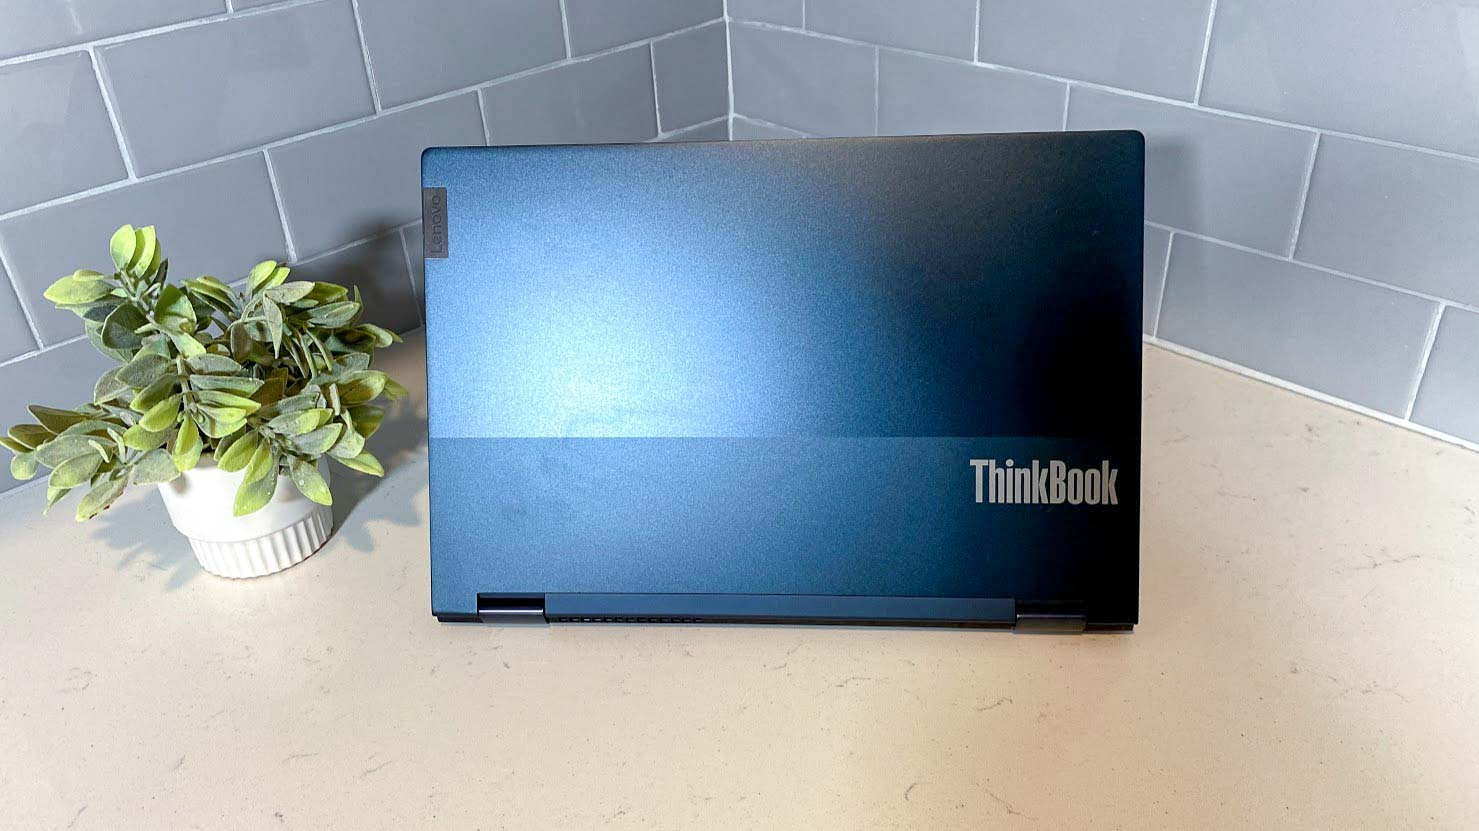 Lenovo ThinkBook 14s Yoga review - Lid